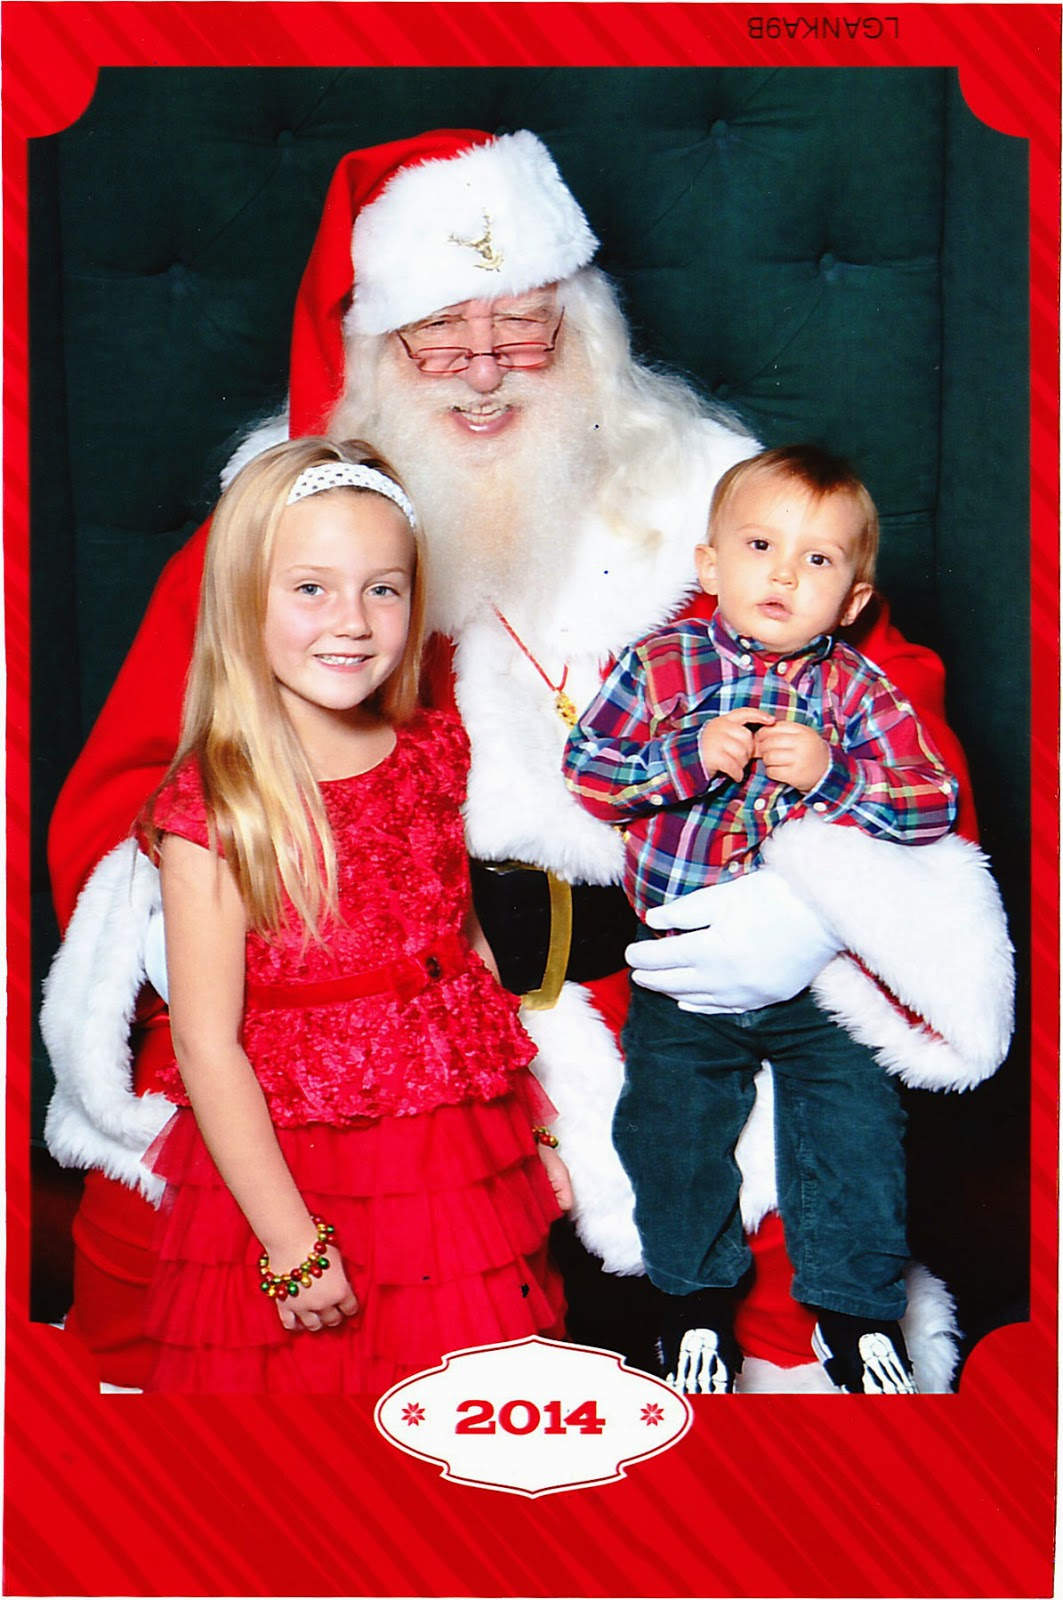 Cousin Belle and Reef Indy with the Mall Santa.